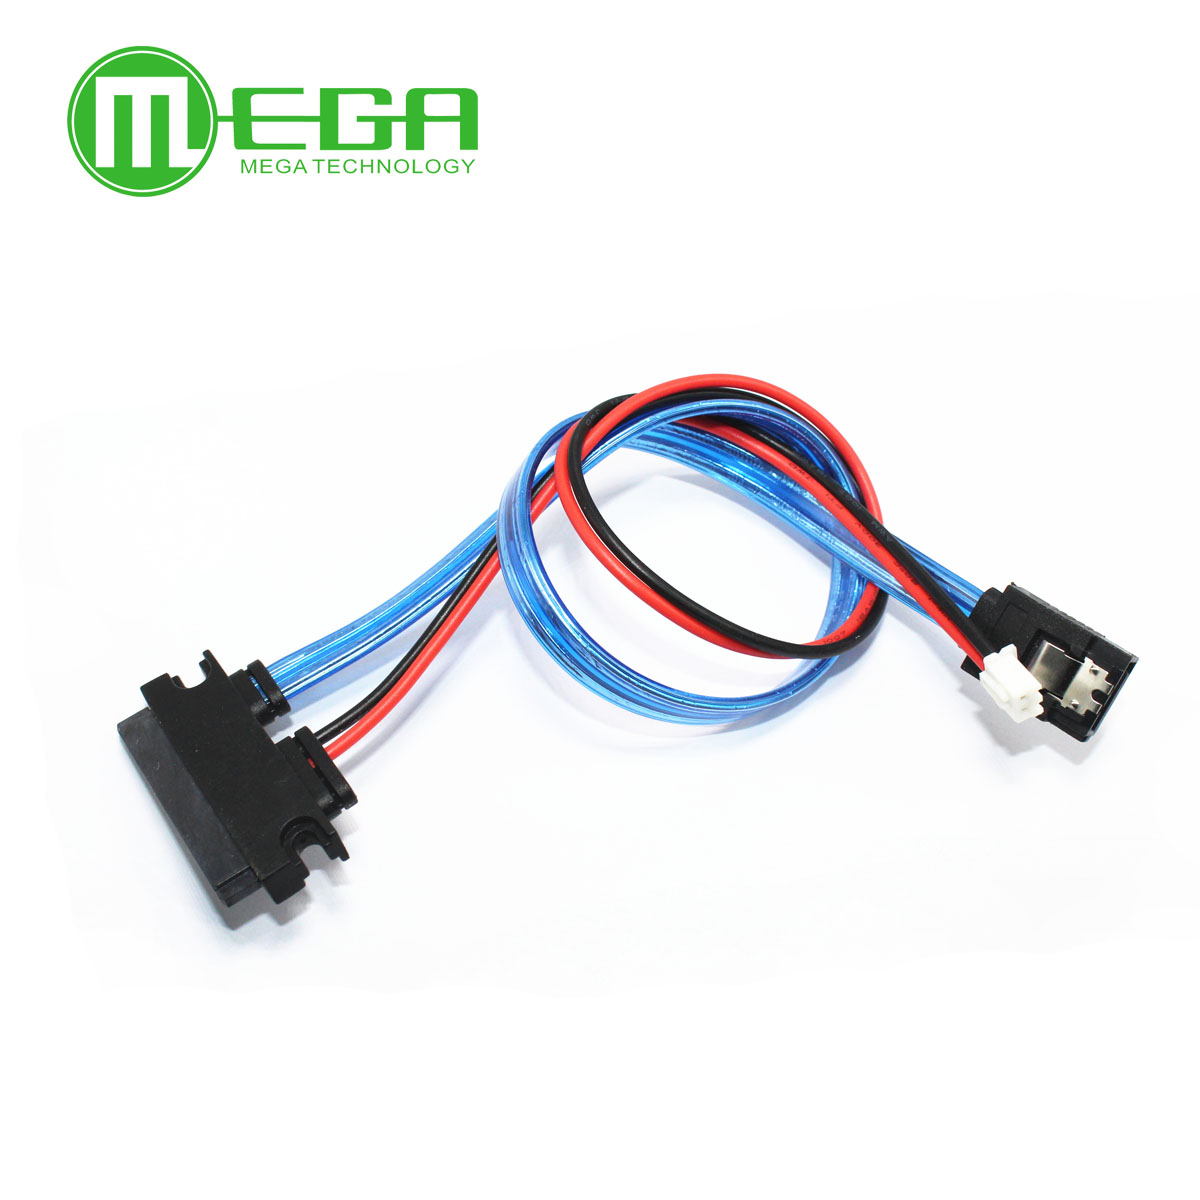 1pcs SATA Cable. Pro HDD Cable. Hard Disk Cable. Connect 2.5 Inch Hard Disk